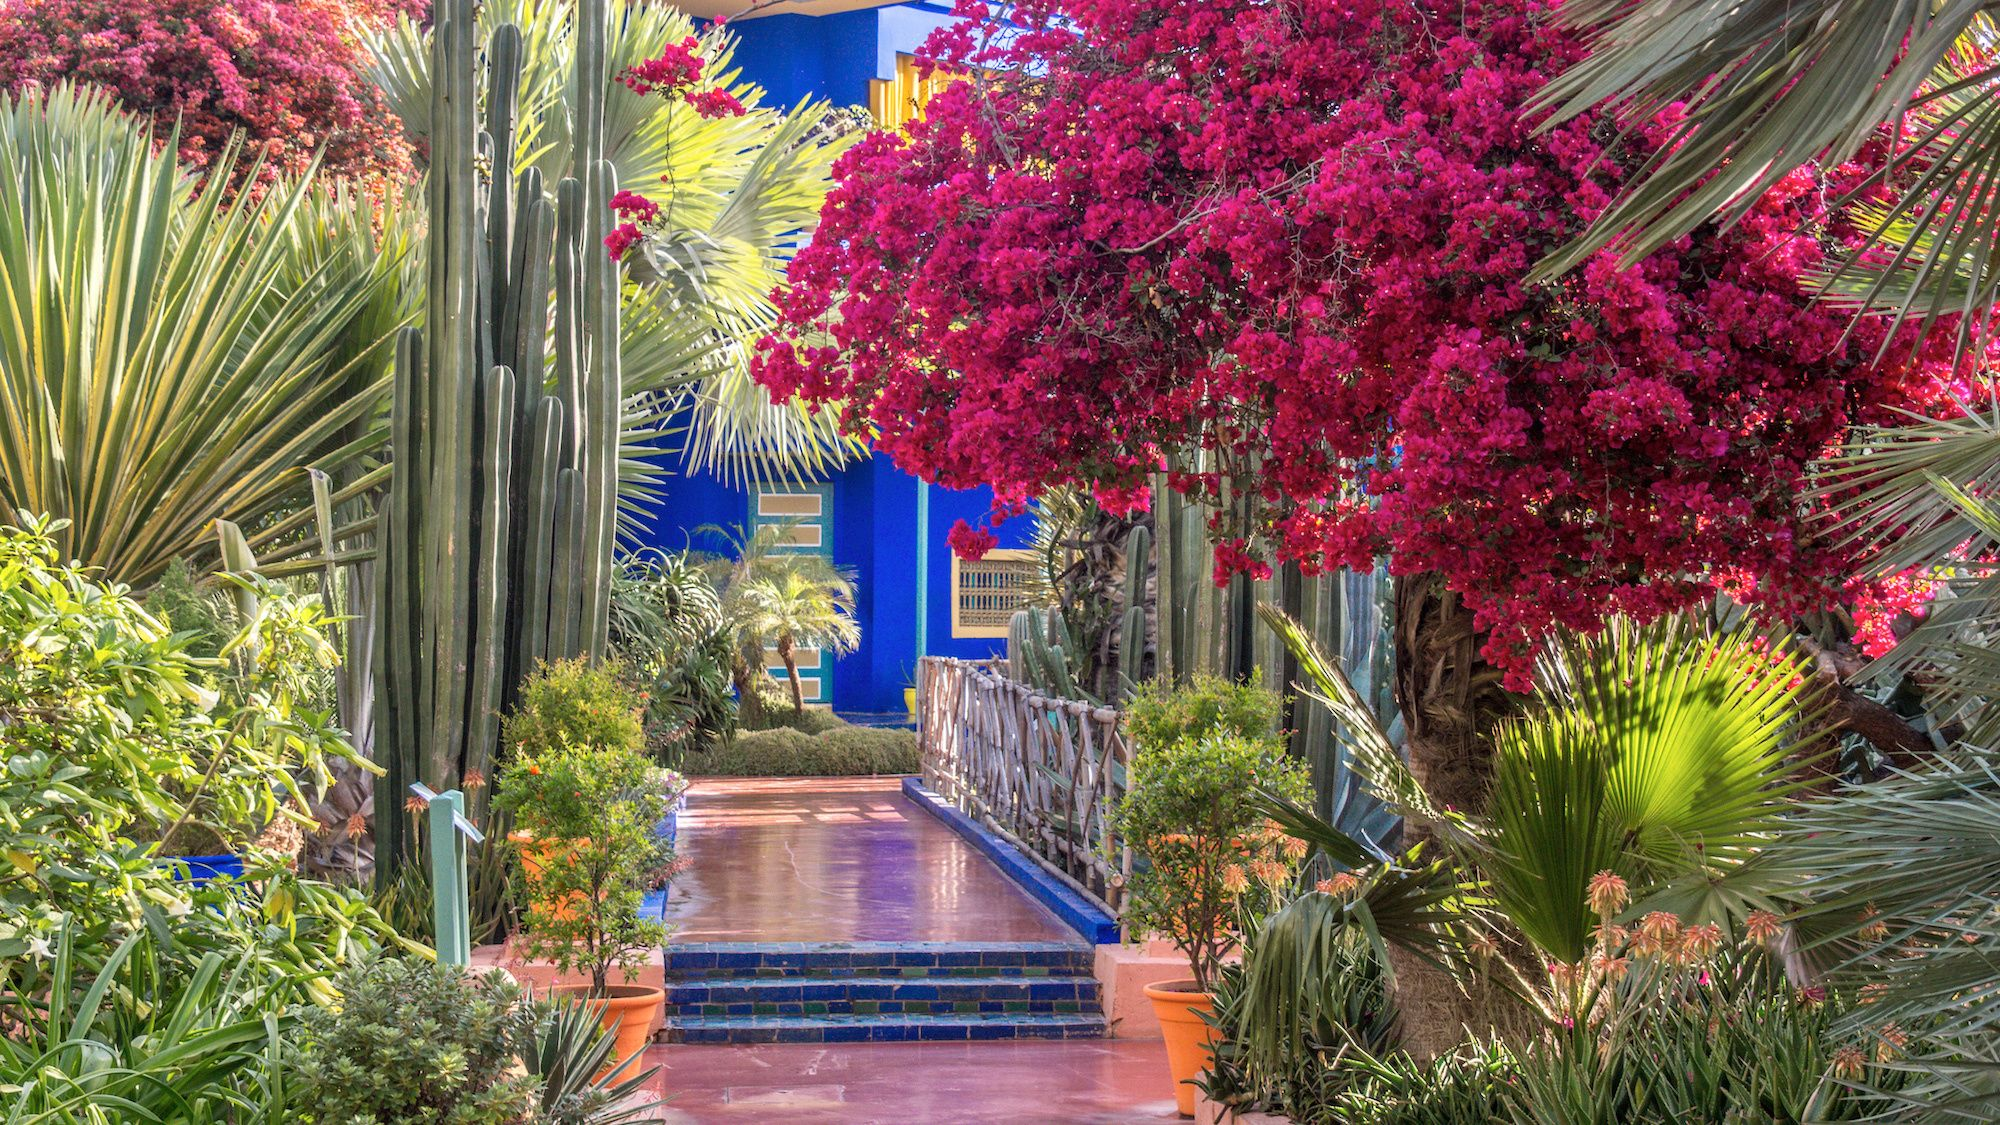 Stunning view inside the renowned Majorelle and Menara gardens in Marrakech